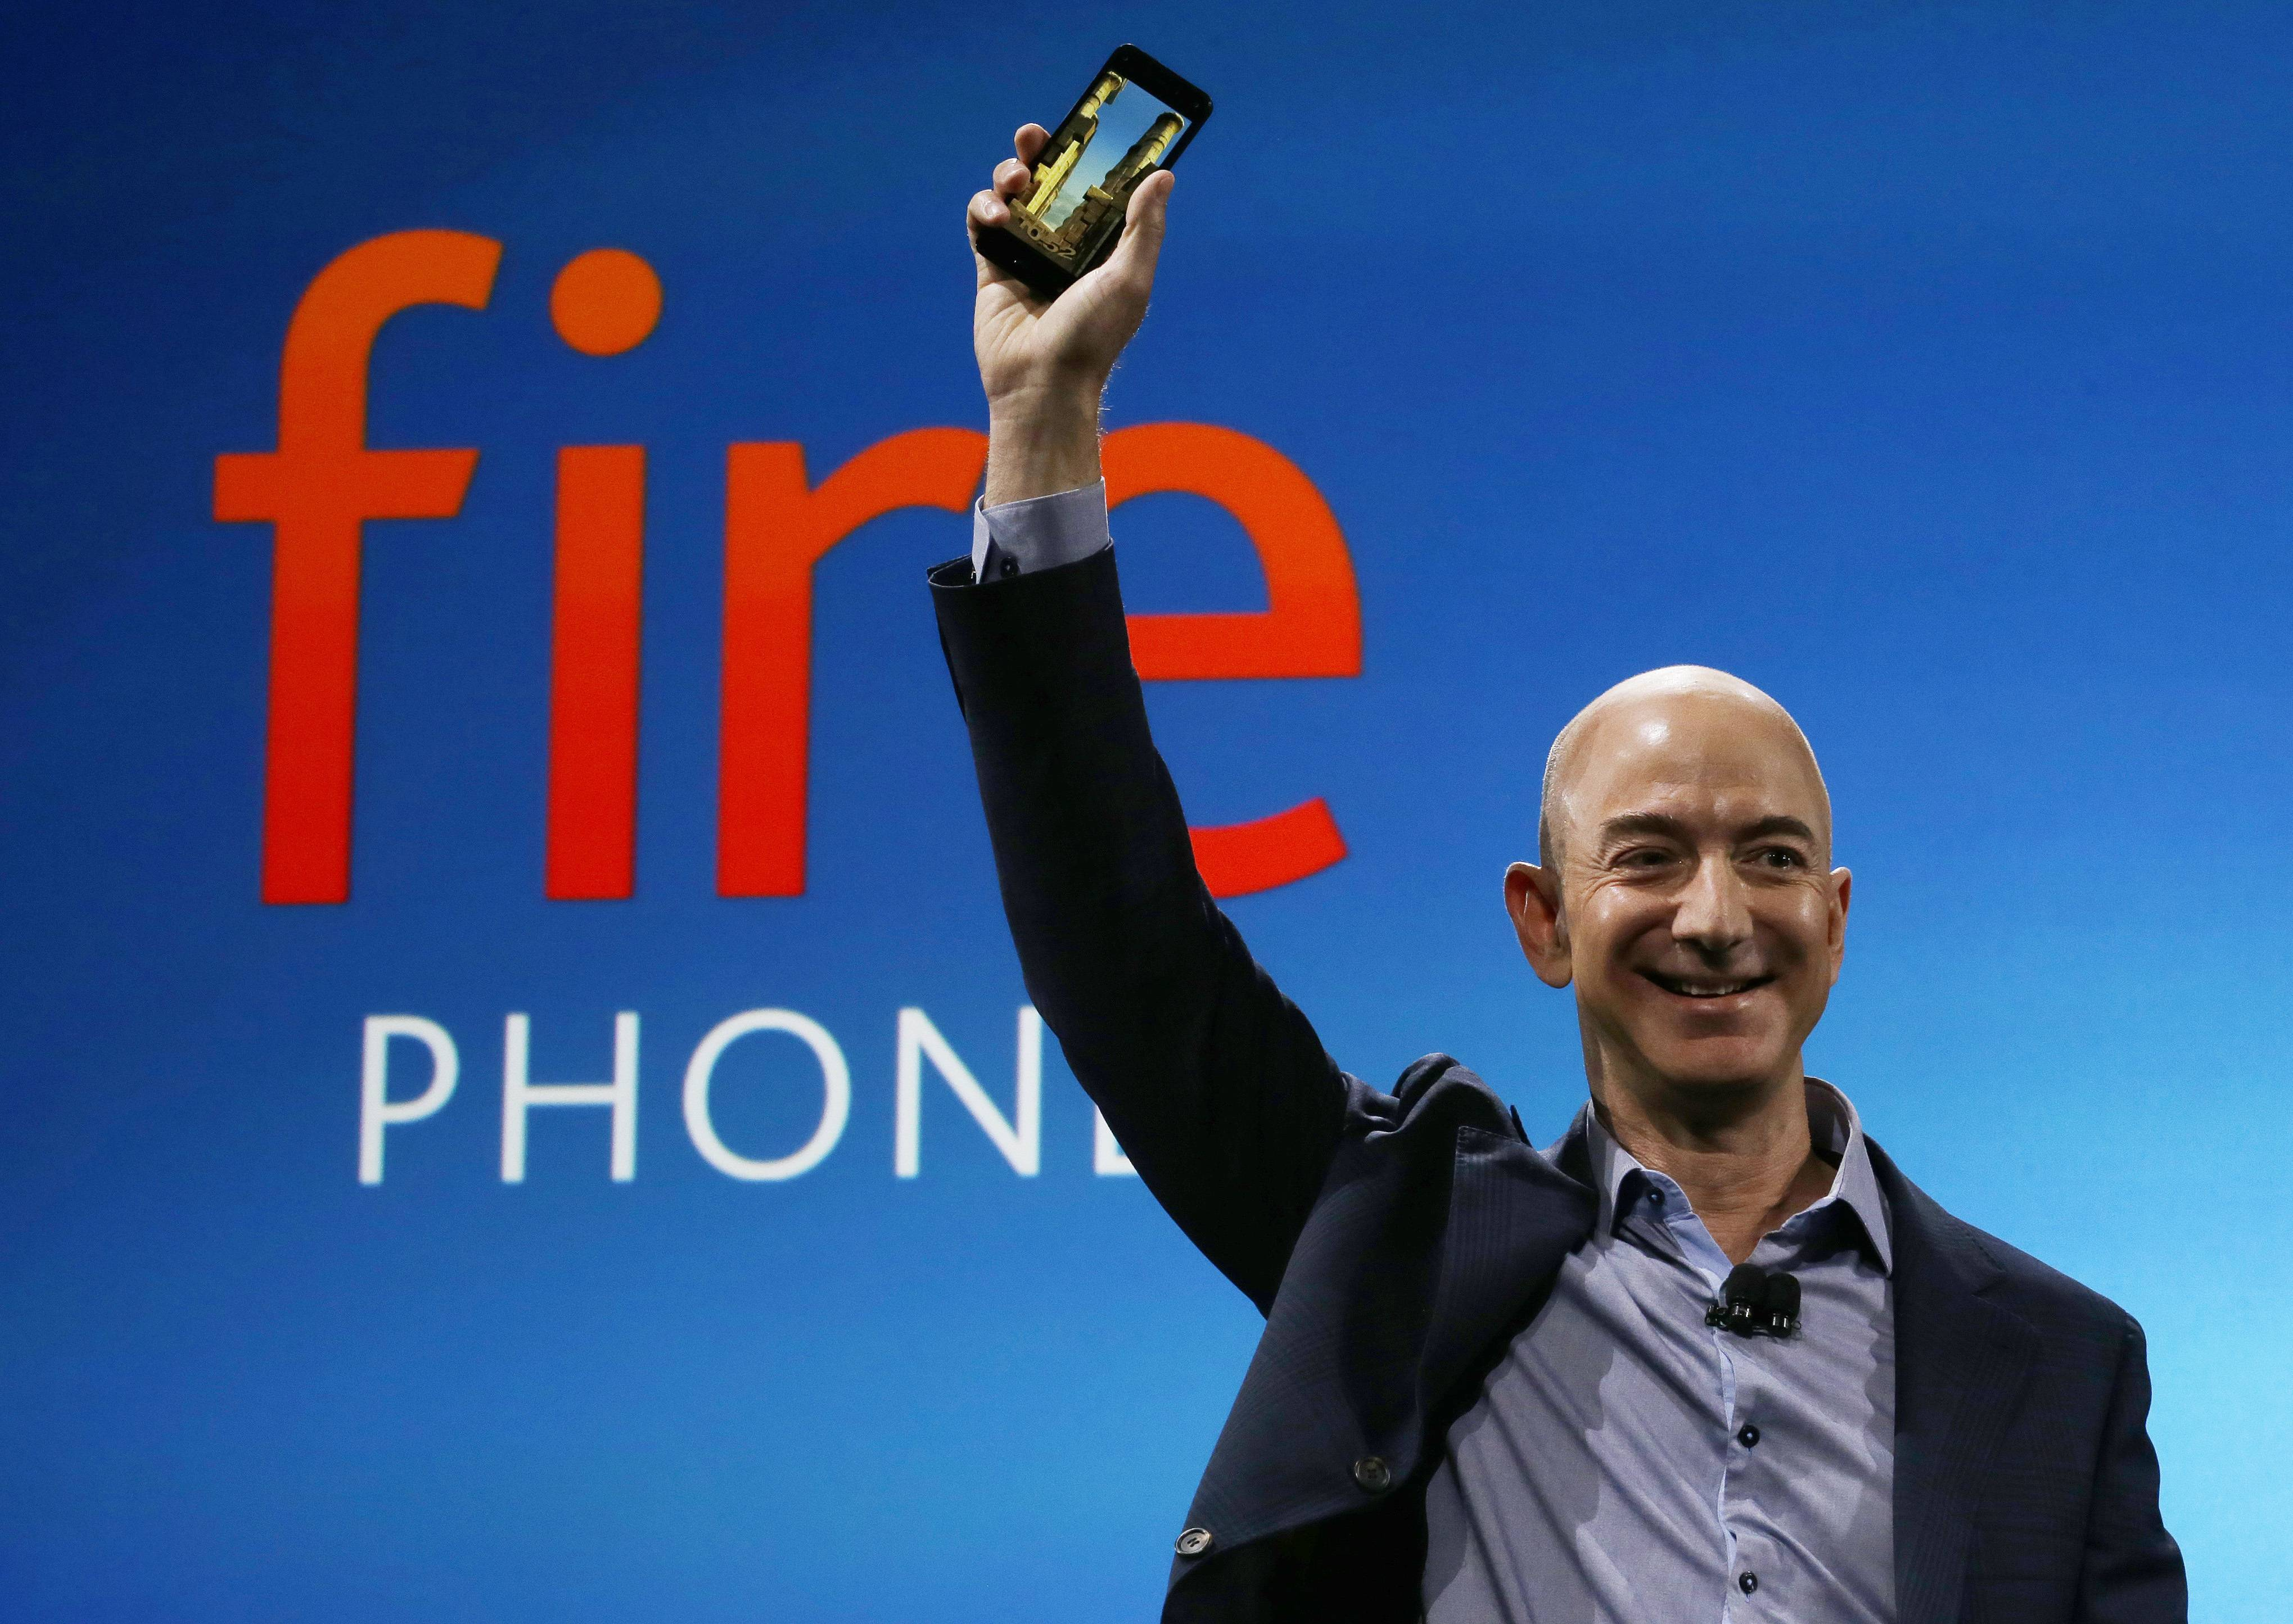 Amazon CEO Jeff Bezos' $147 billion fortune easily makes him the world's richest person.